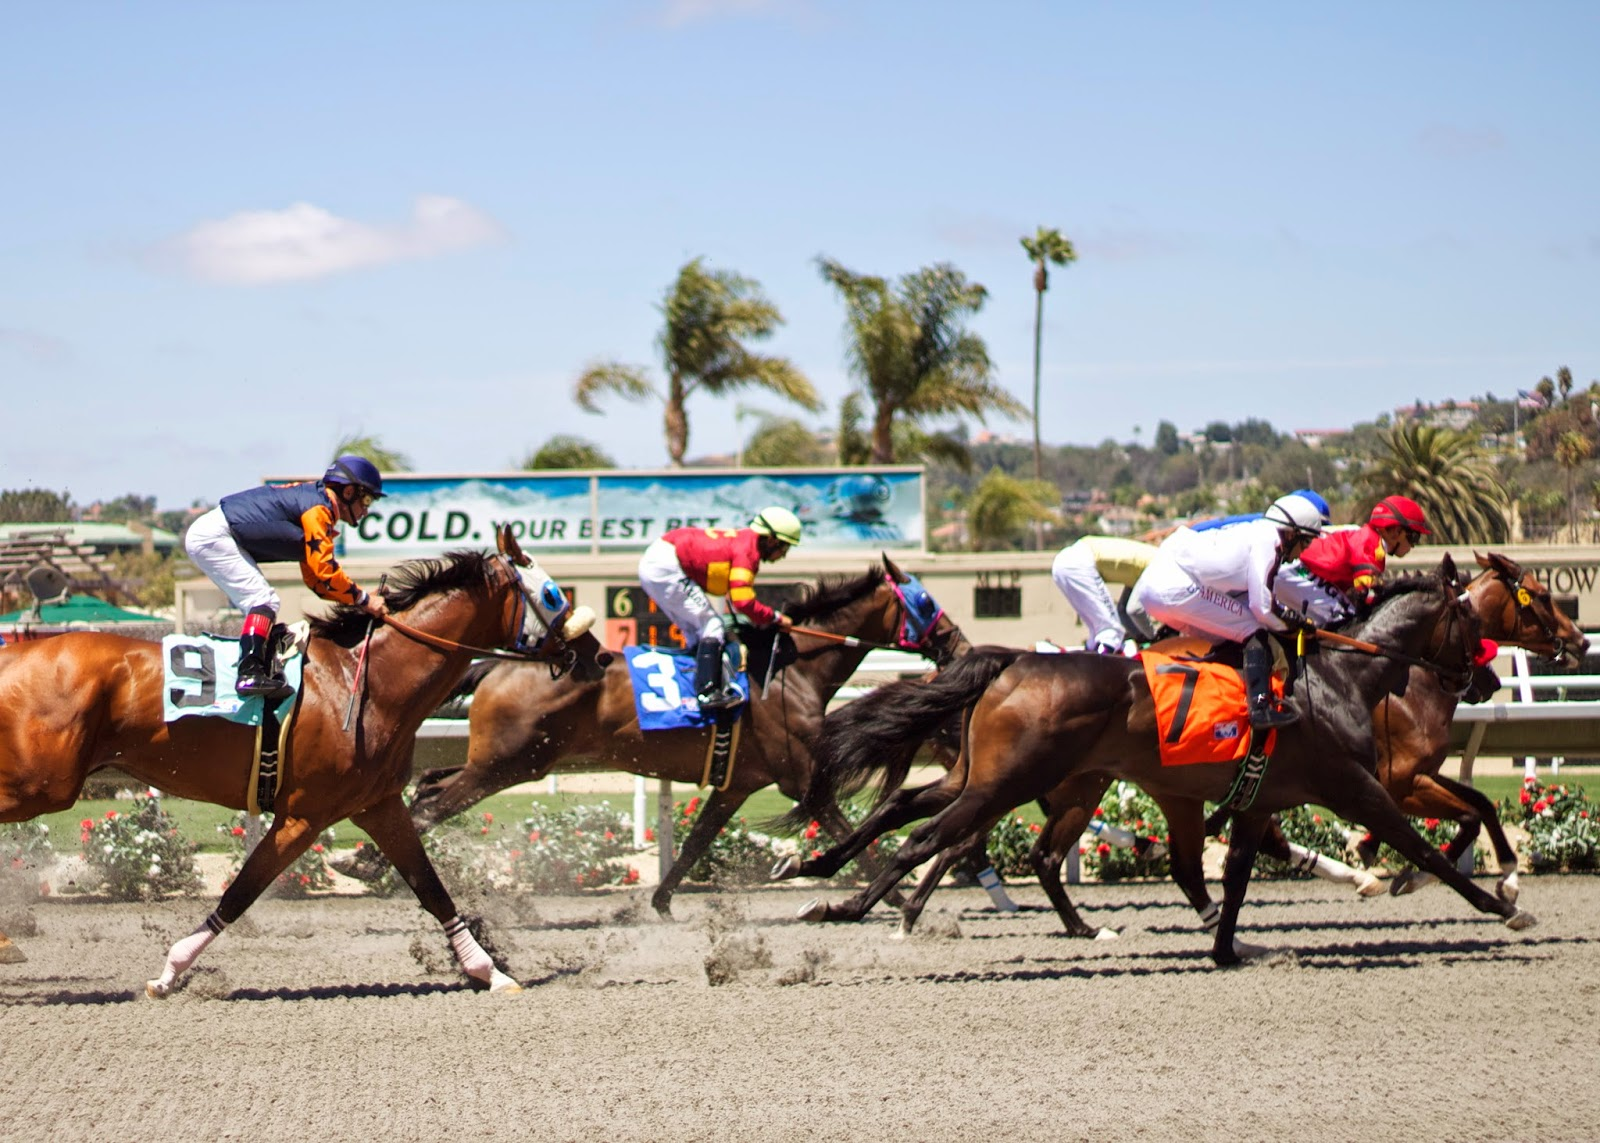 delmarracing horses, horse races in del mar, horse racing del mar 2014